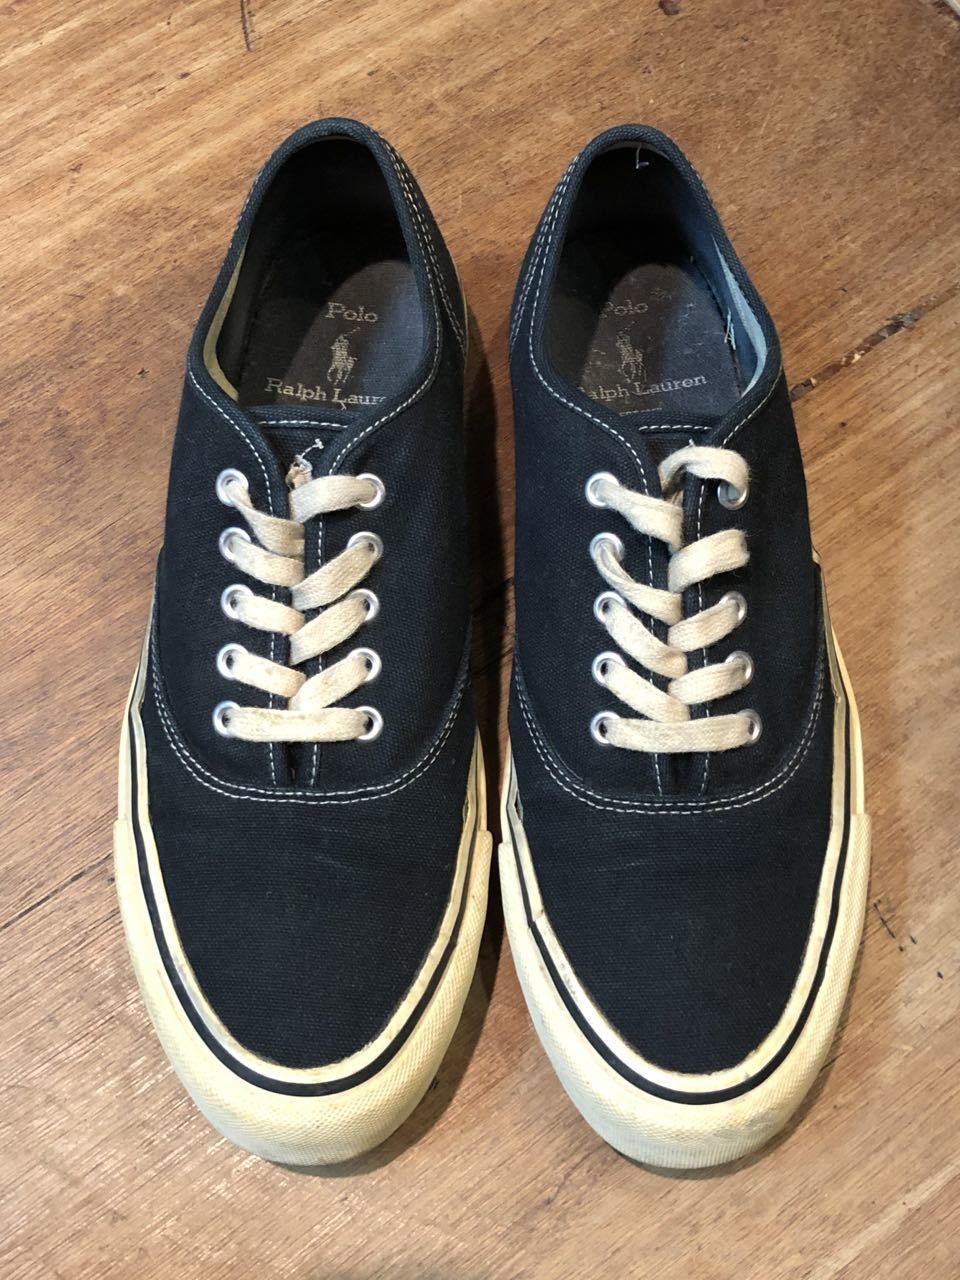 7月2日(木)入荷! POLO RALPH LAUREN DECK SHOES !_c0144020_13441362.jpg